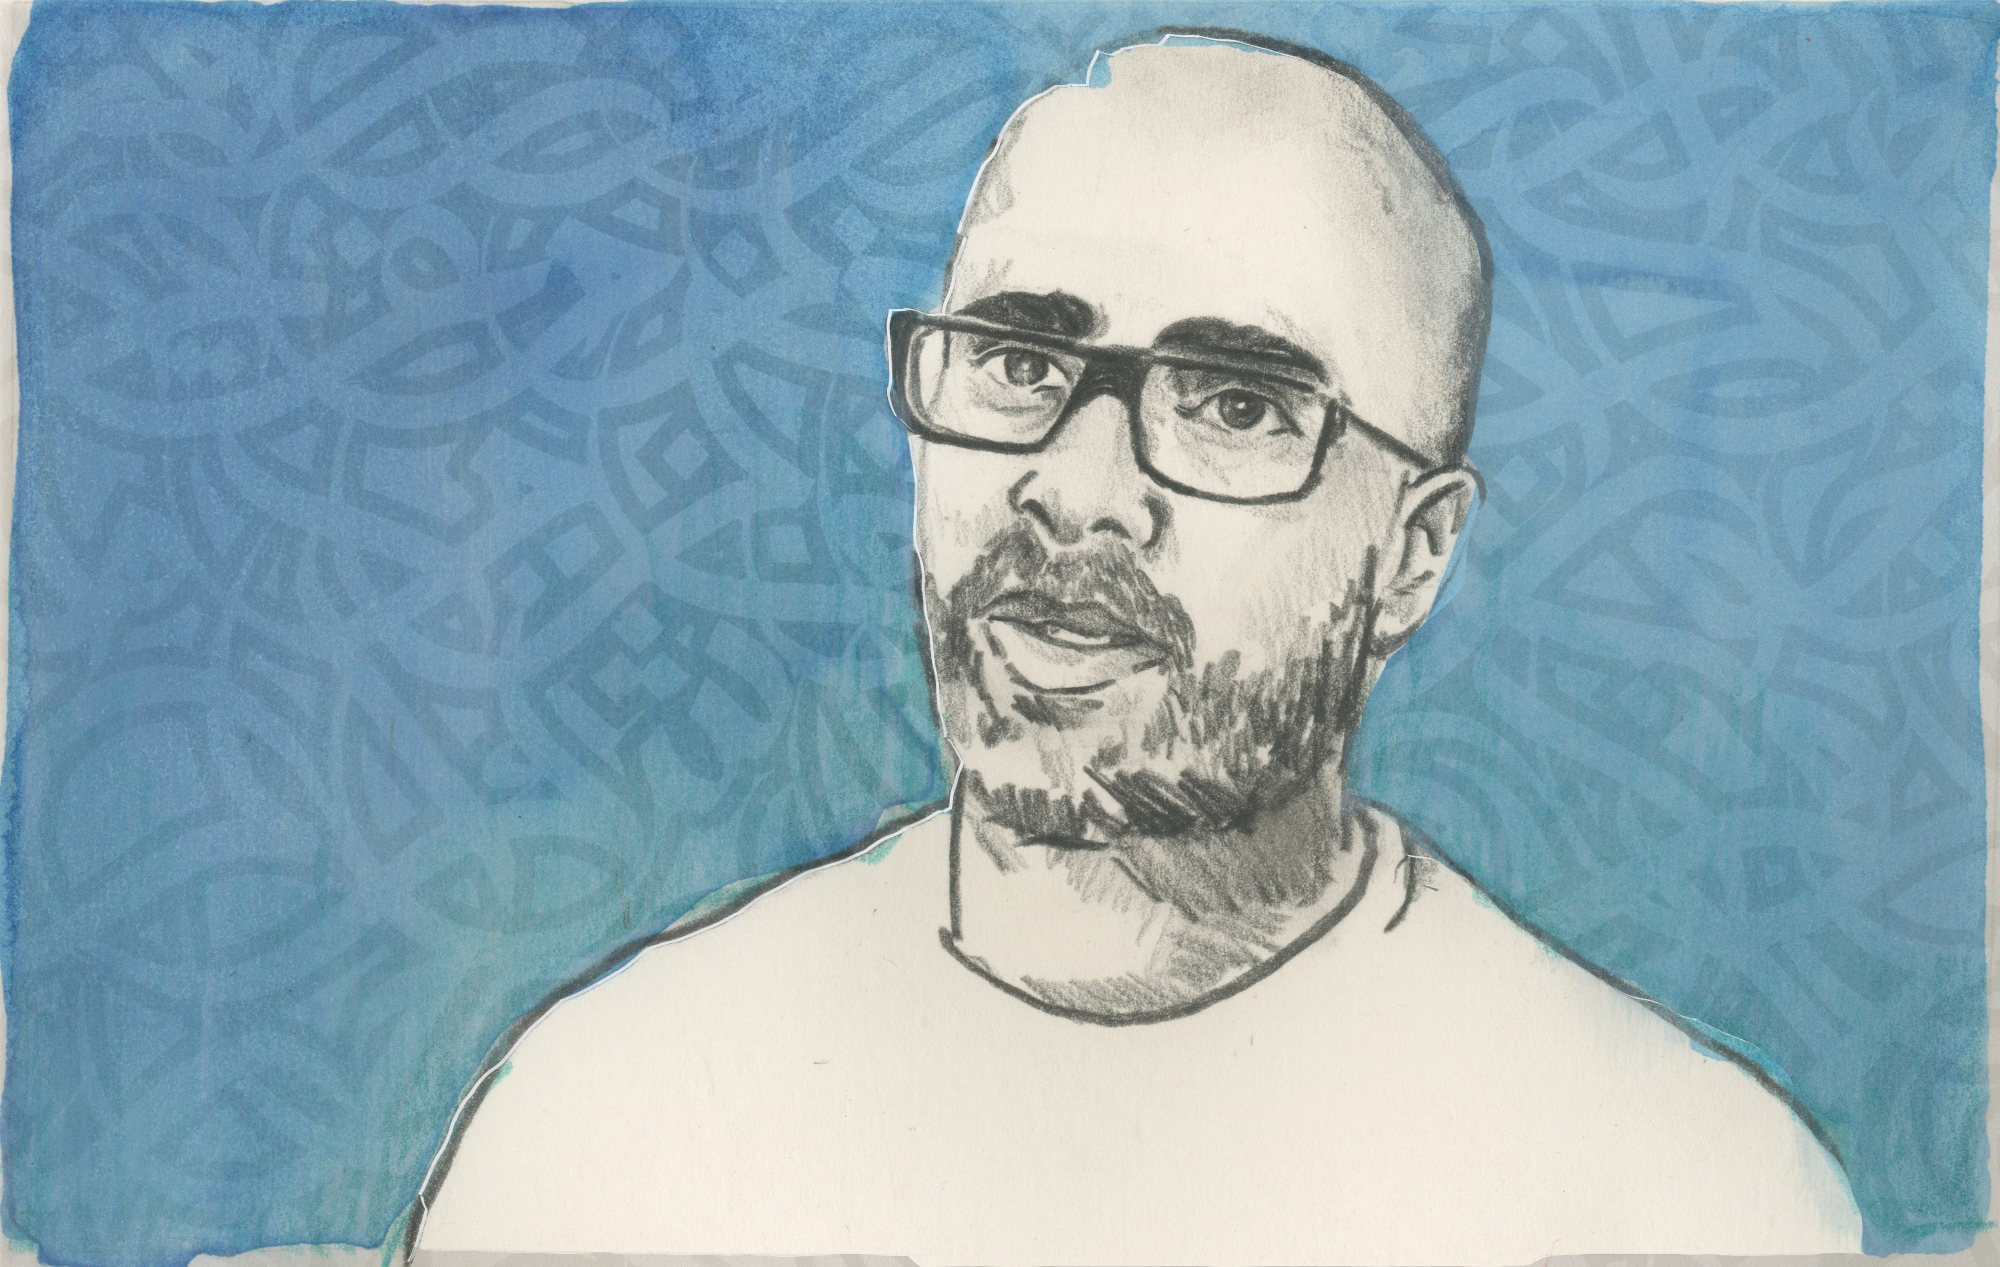 16/02/15Tunisian eL Seedis a 'calligraffiti' artist who blends the modern art of graffiti with the historic art of Arabic calligraphy to encourage peaceful expression and social change.